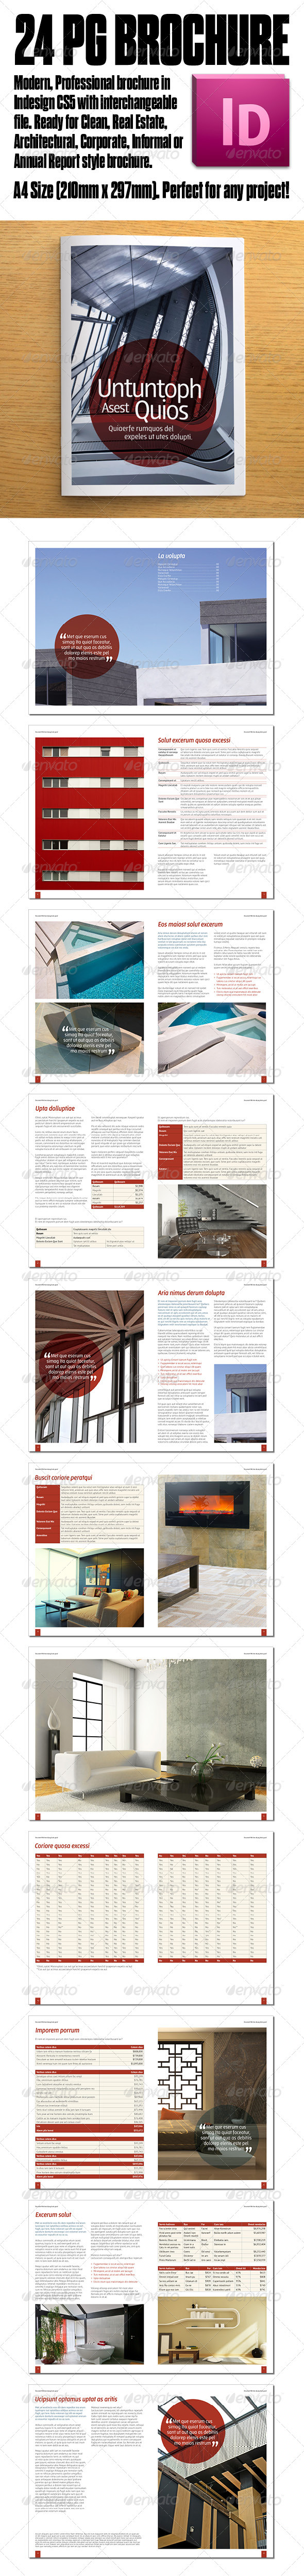 GraphicRiver Architecture Report Corporate 24pg Brochure 3523566